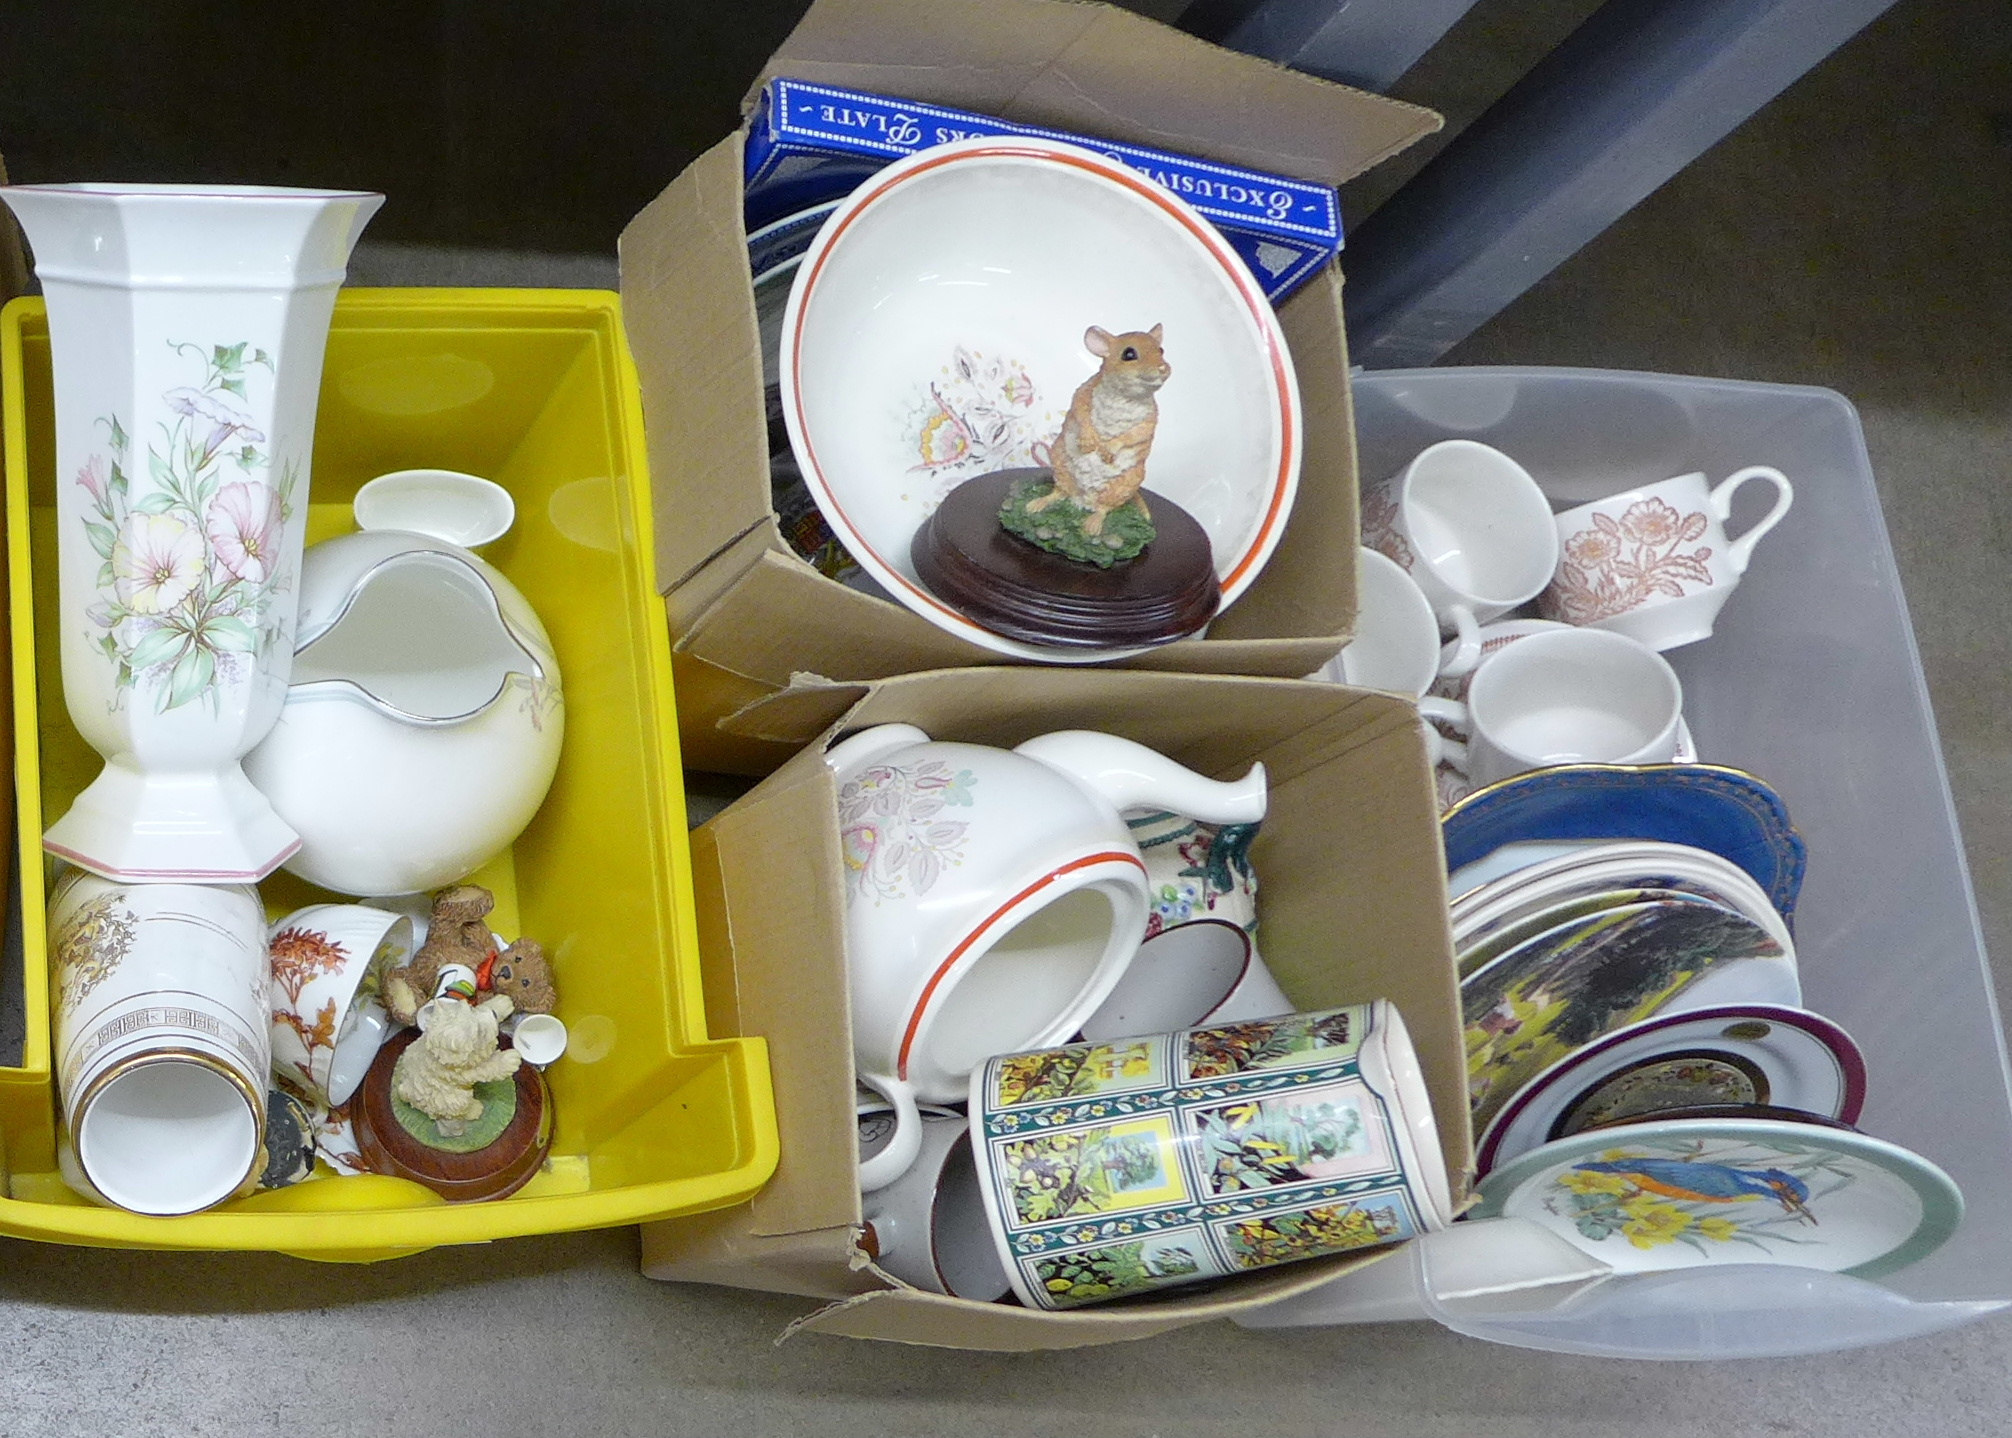 A collection of mixed china including Royal Doulton, Limoges and Hammersley and two Lord of the